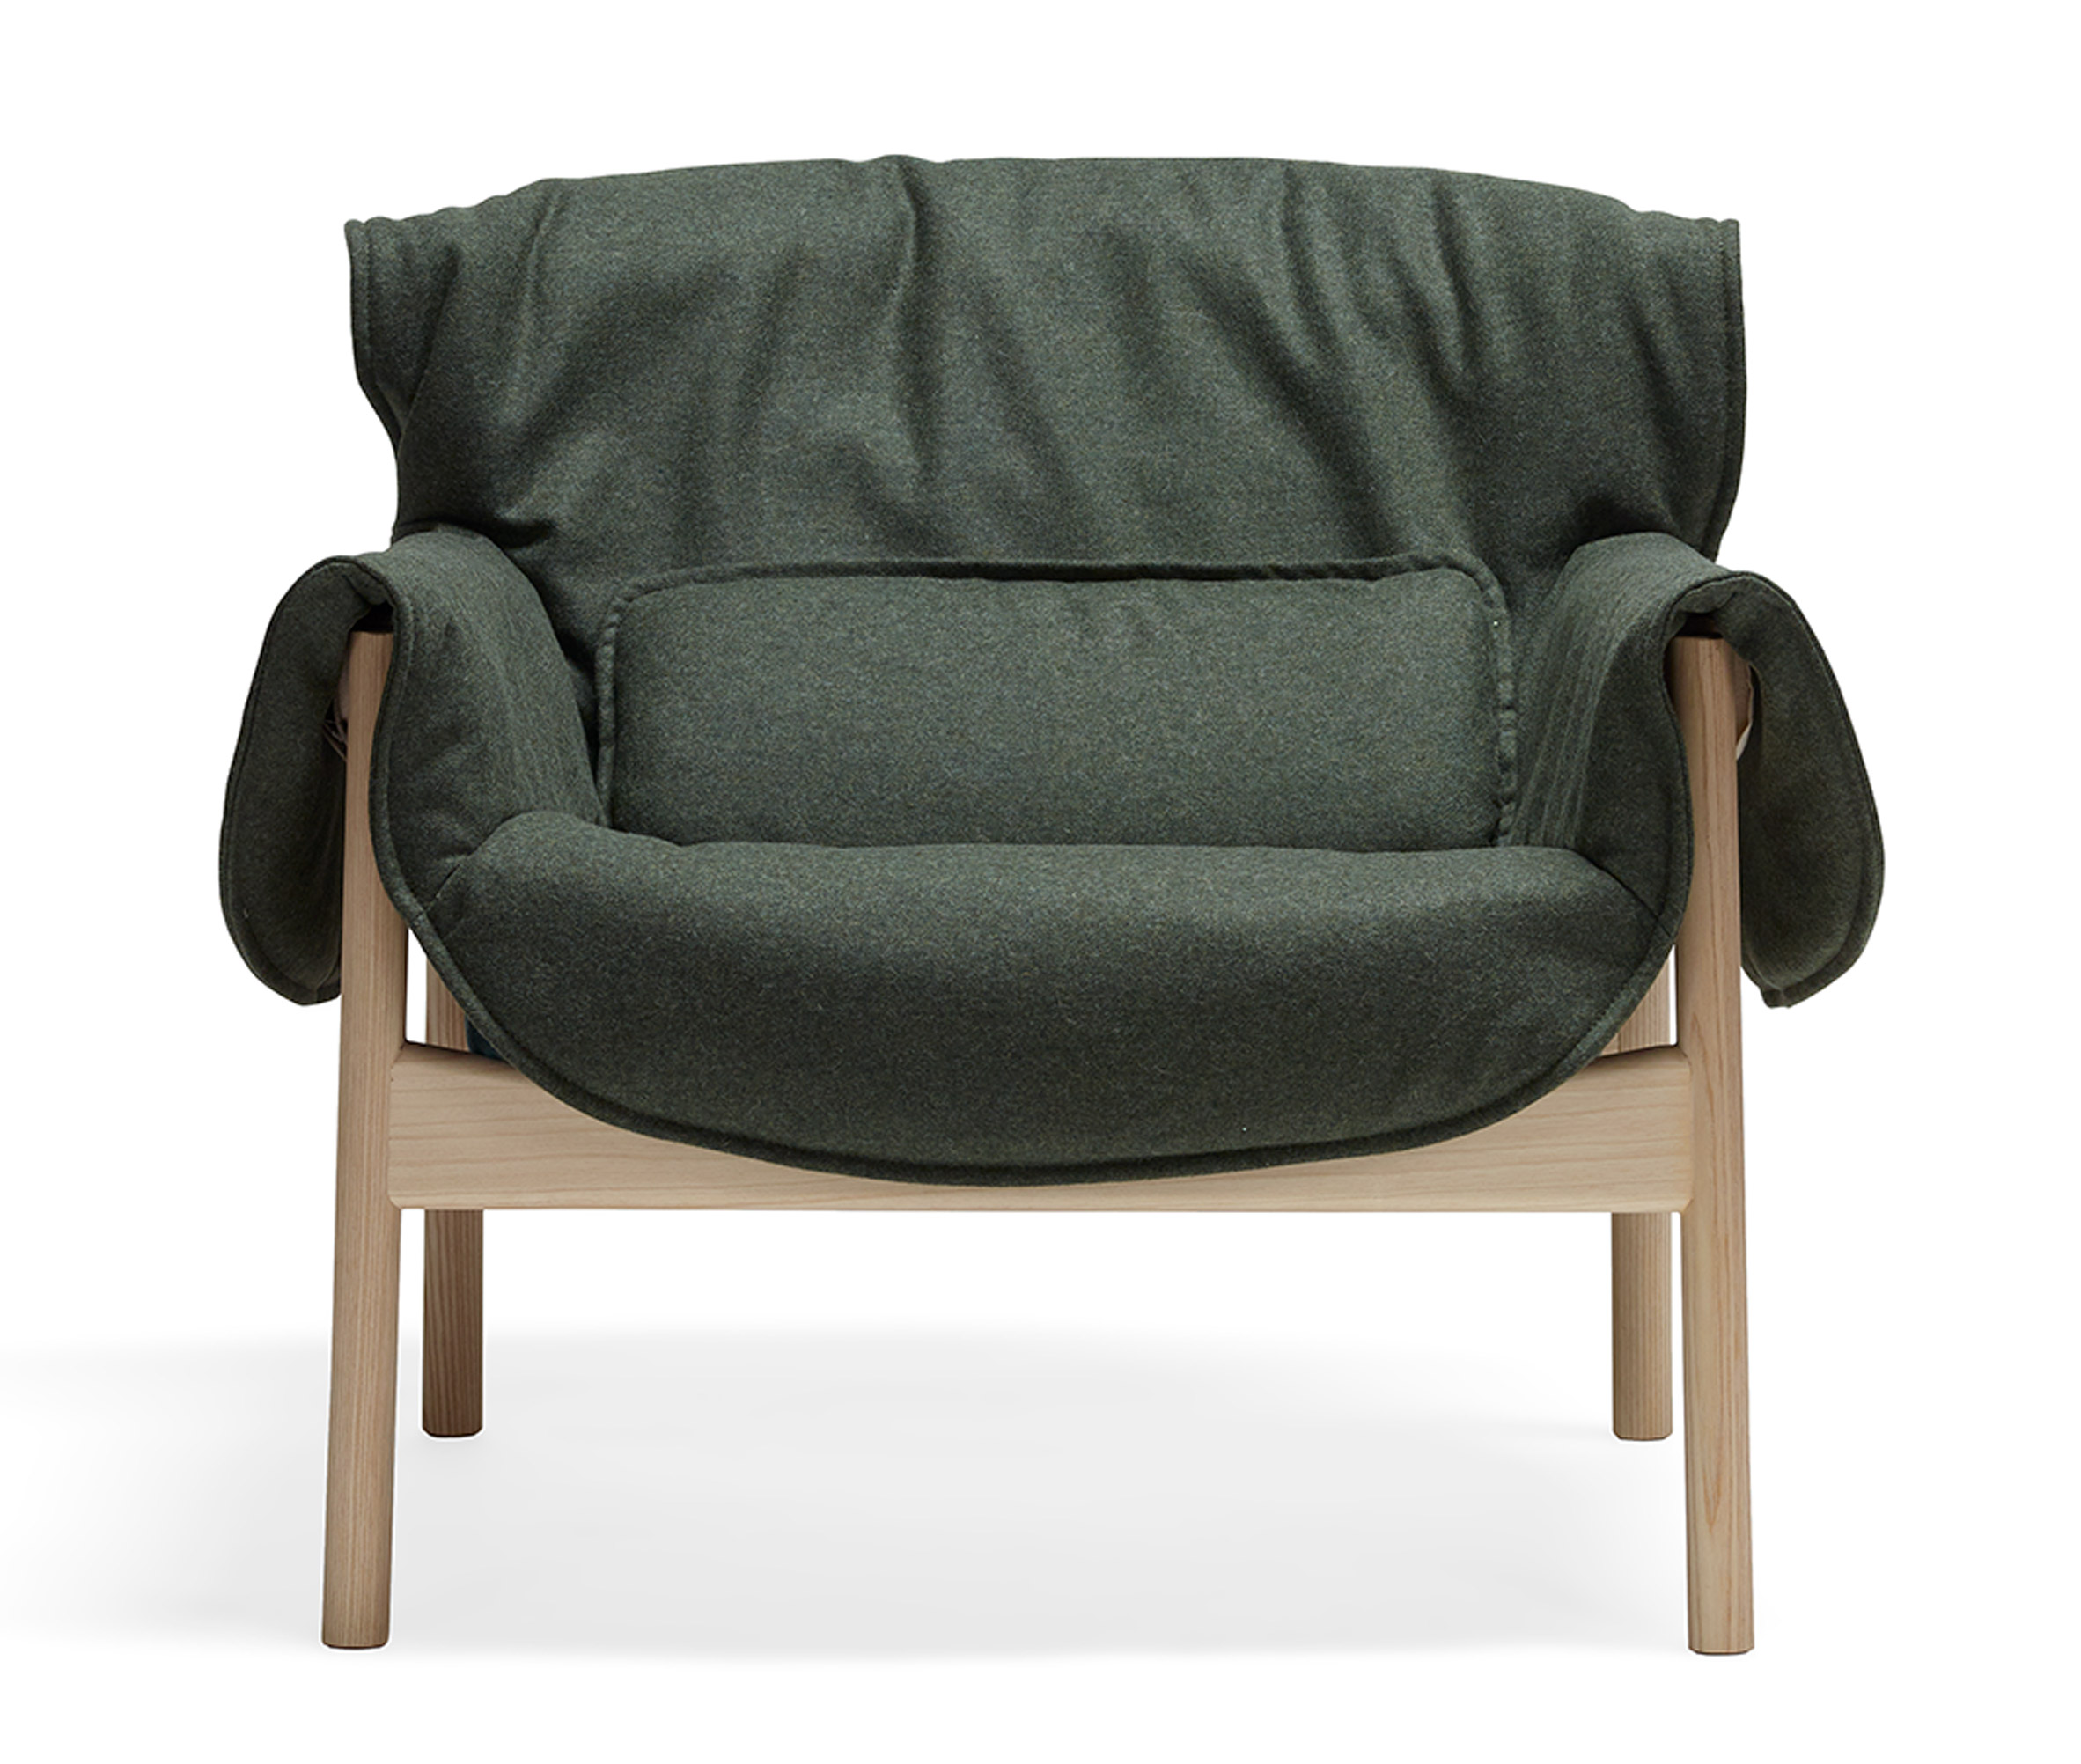 "Andreas Engesvik imagines a ""gentle, warm person"" in design for Agnes chair"